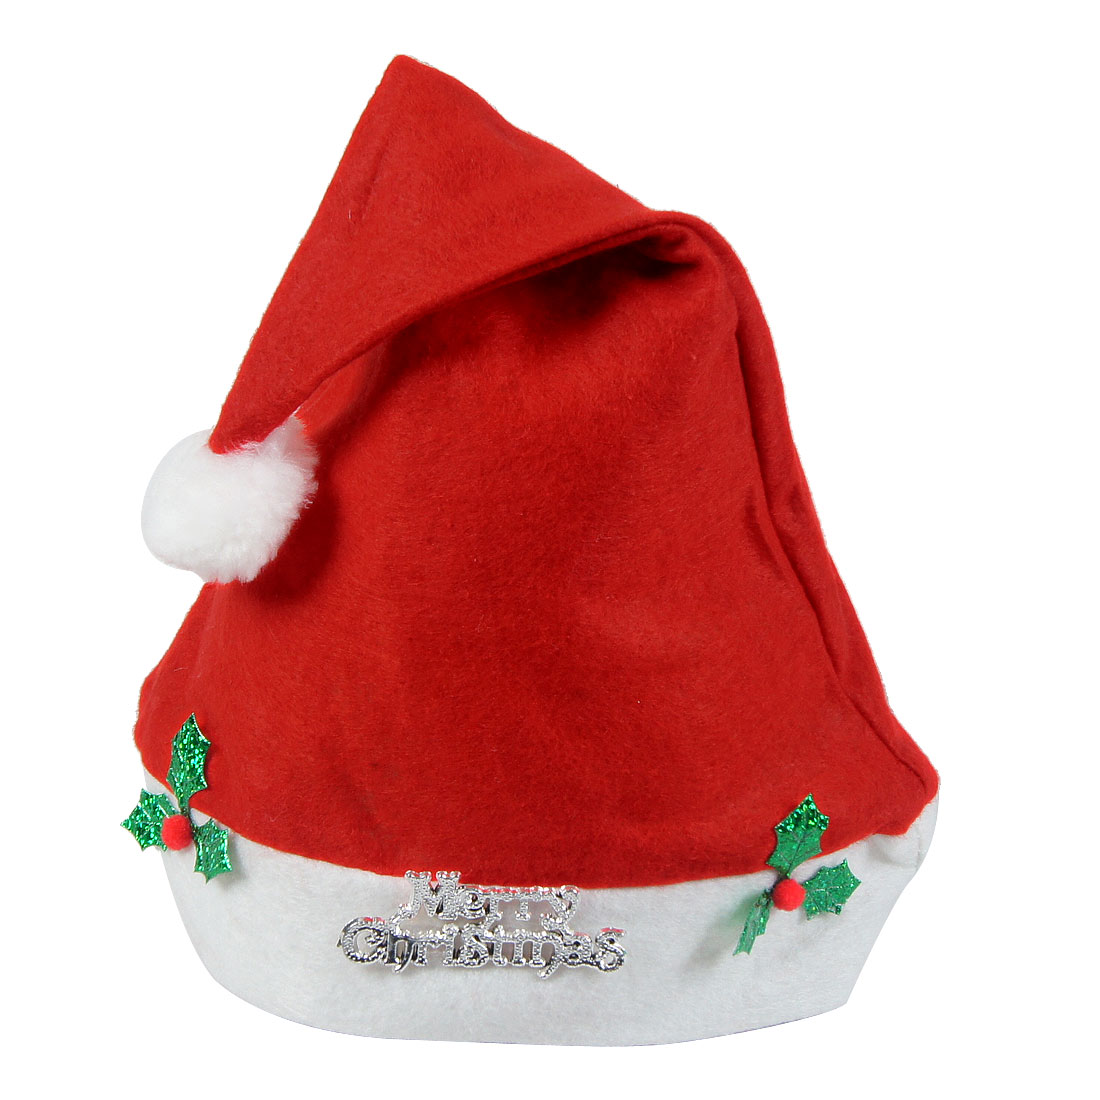 Leaves Decor White Trim True Red Christmas Santa Hat for Adults